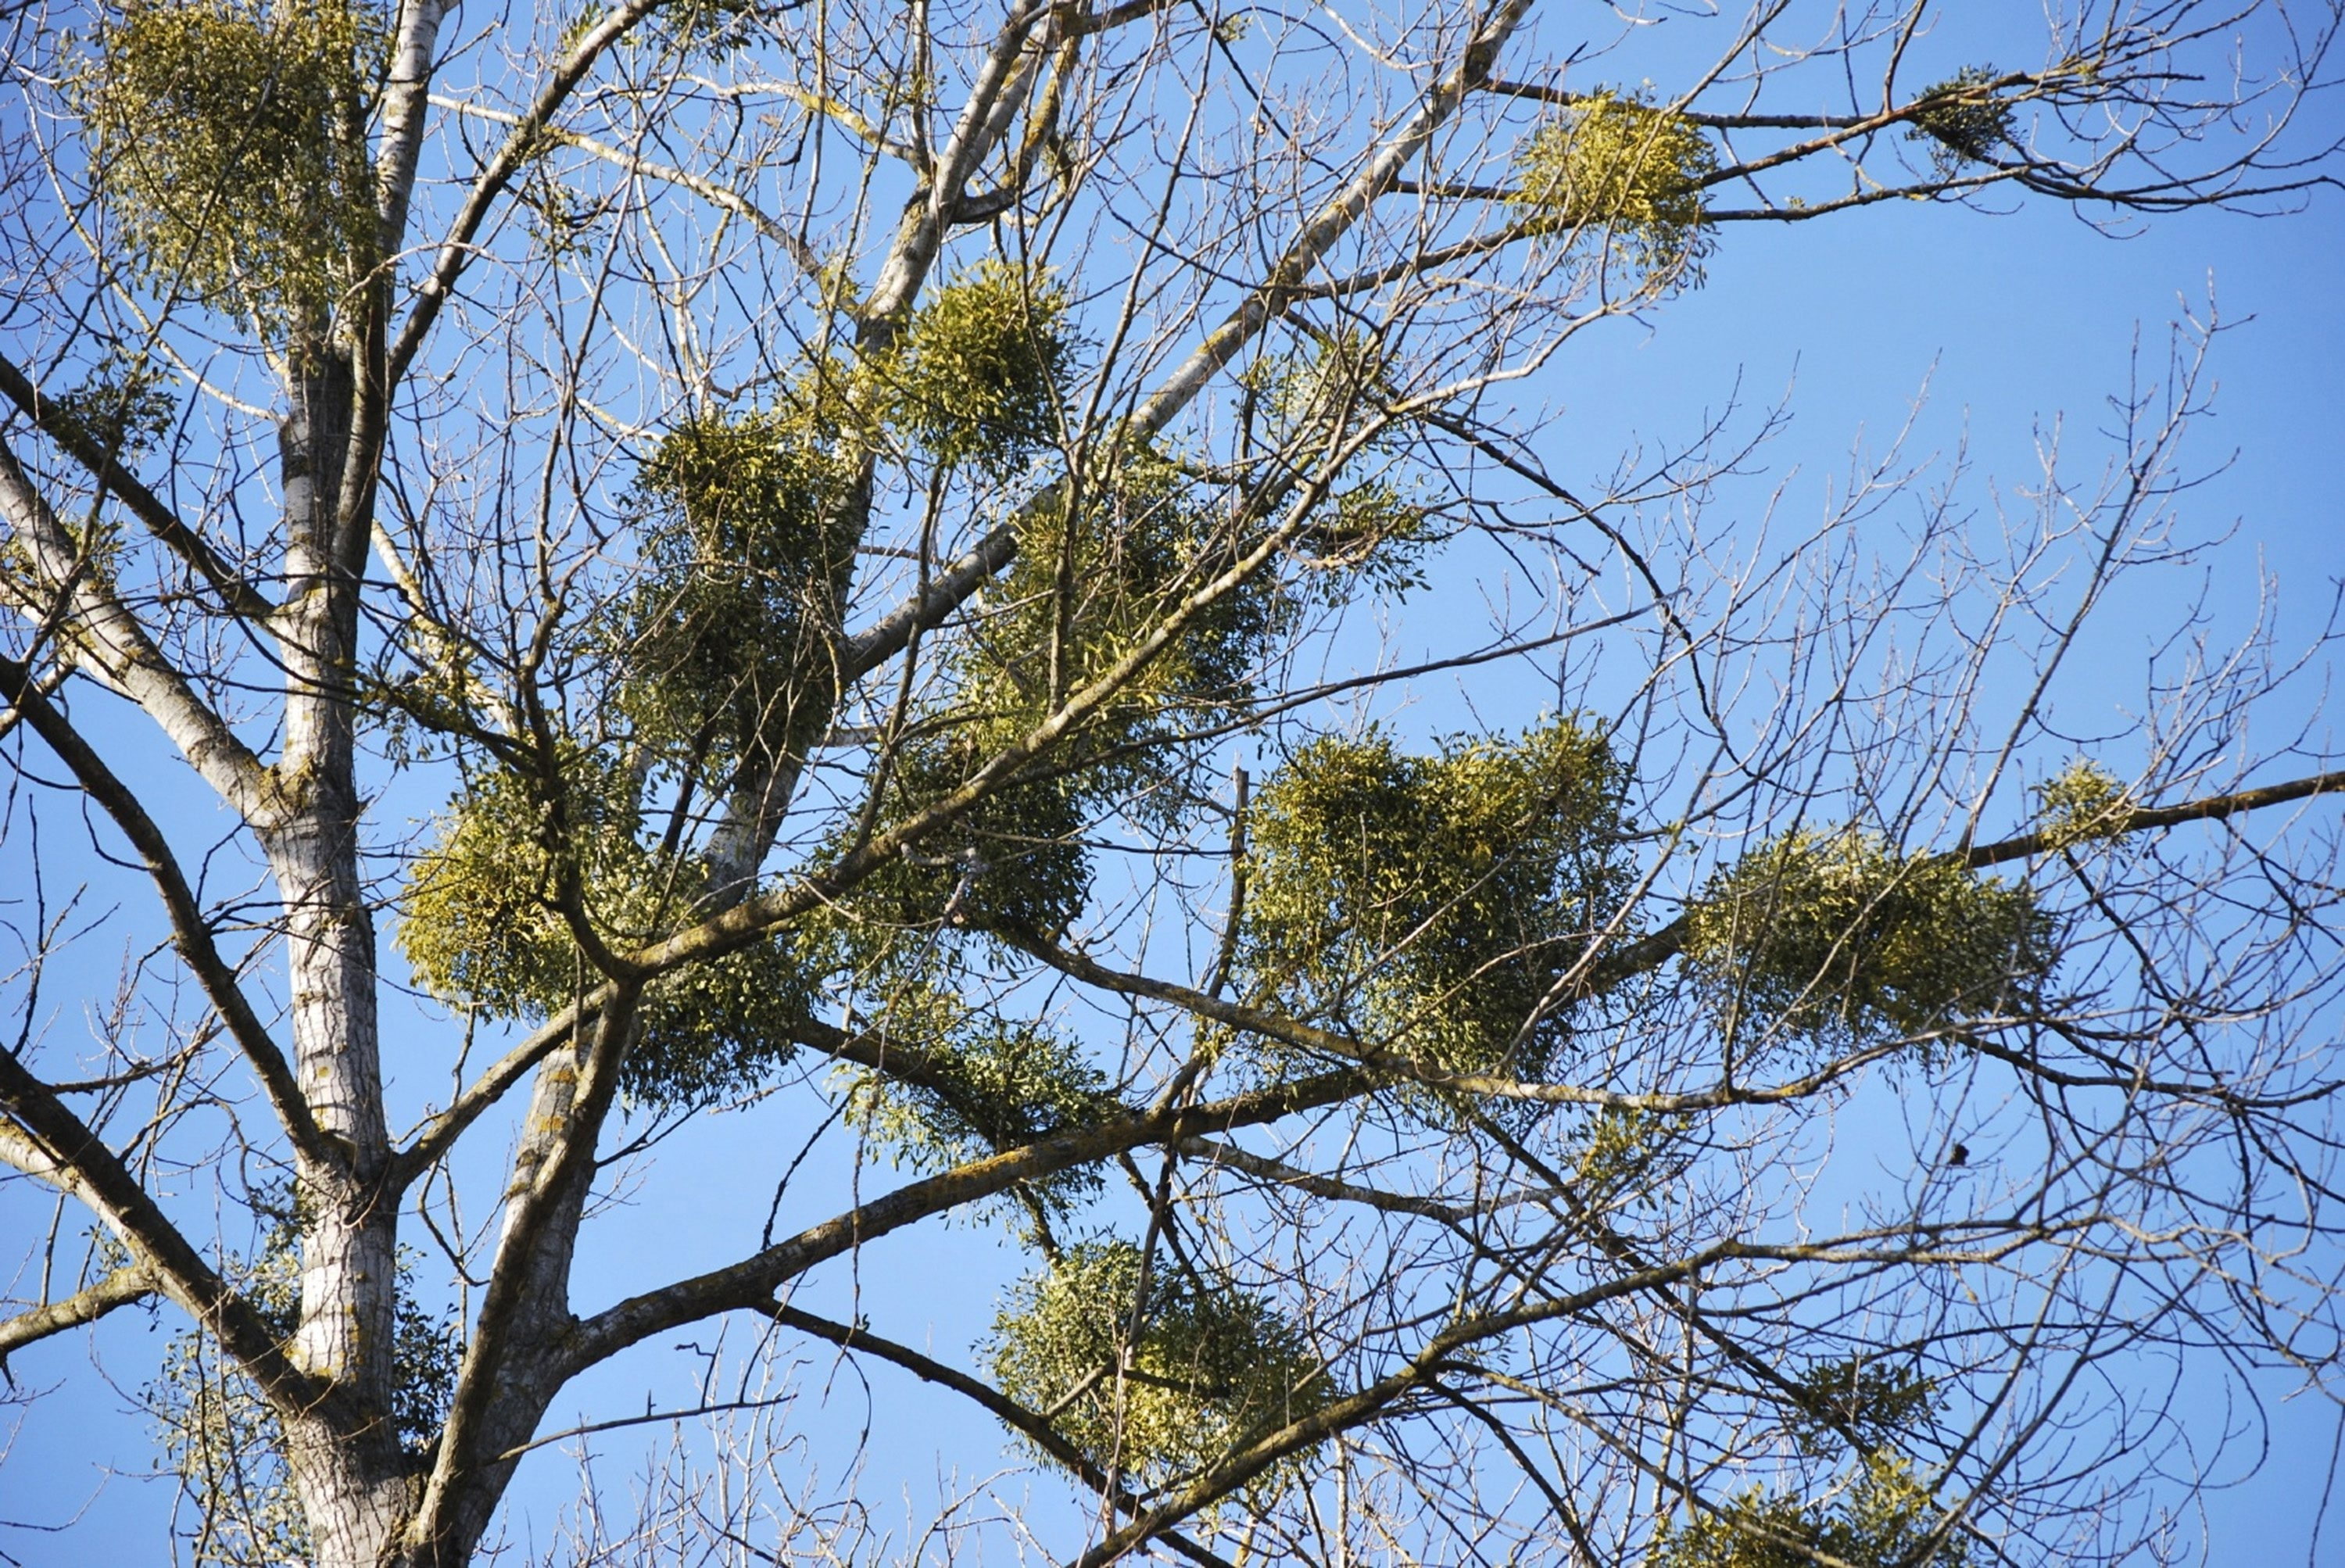 The common holiday mistletoe known as American (or oak) mistletoe is harvested in the wild mostly from Oklahoma and Texas to sell, but in America, it's native to about 26 states.